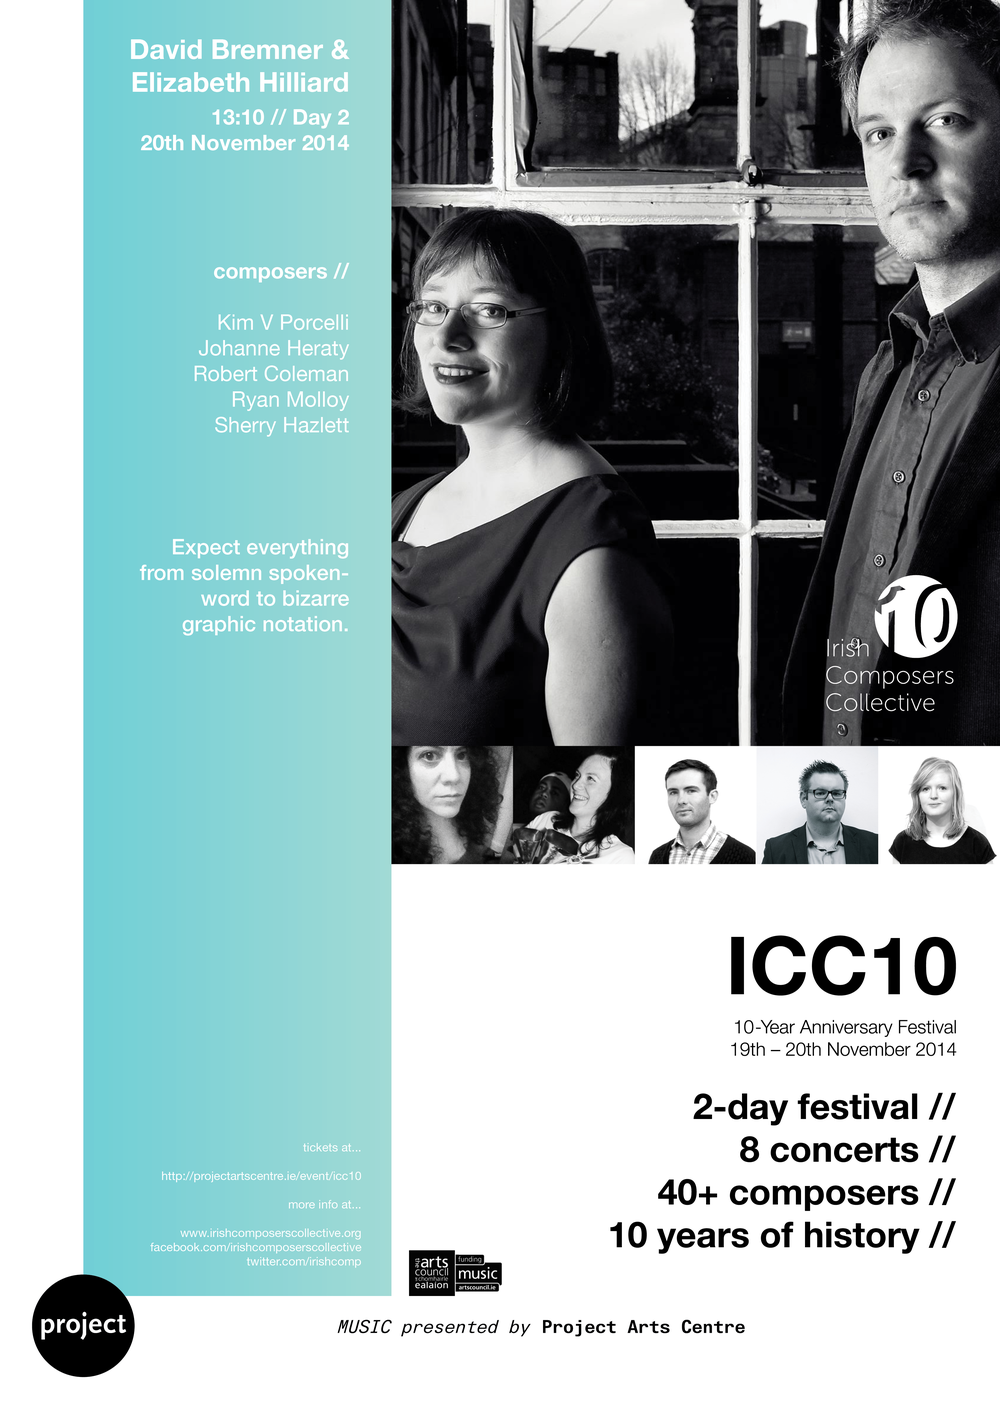 icc10 a3 poster_DB&EH.png